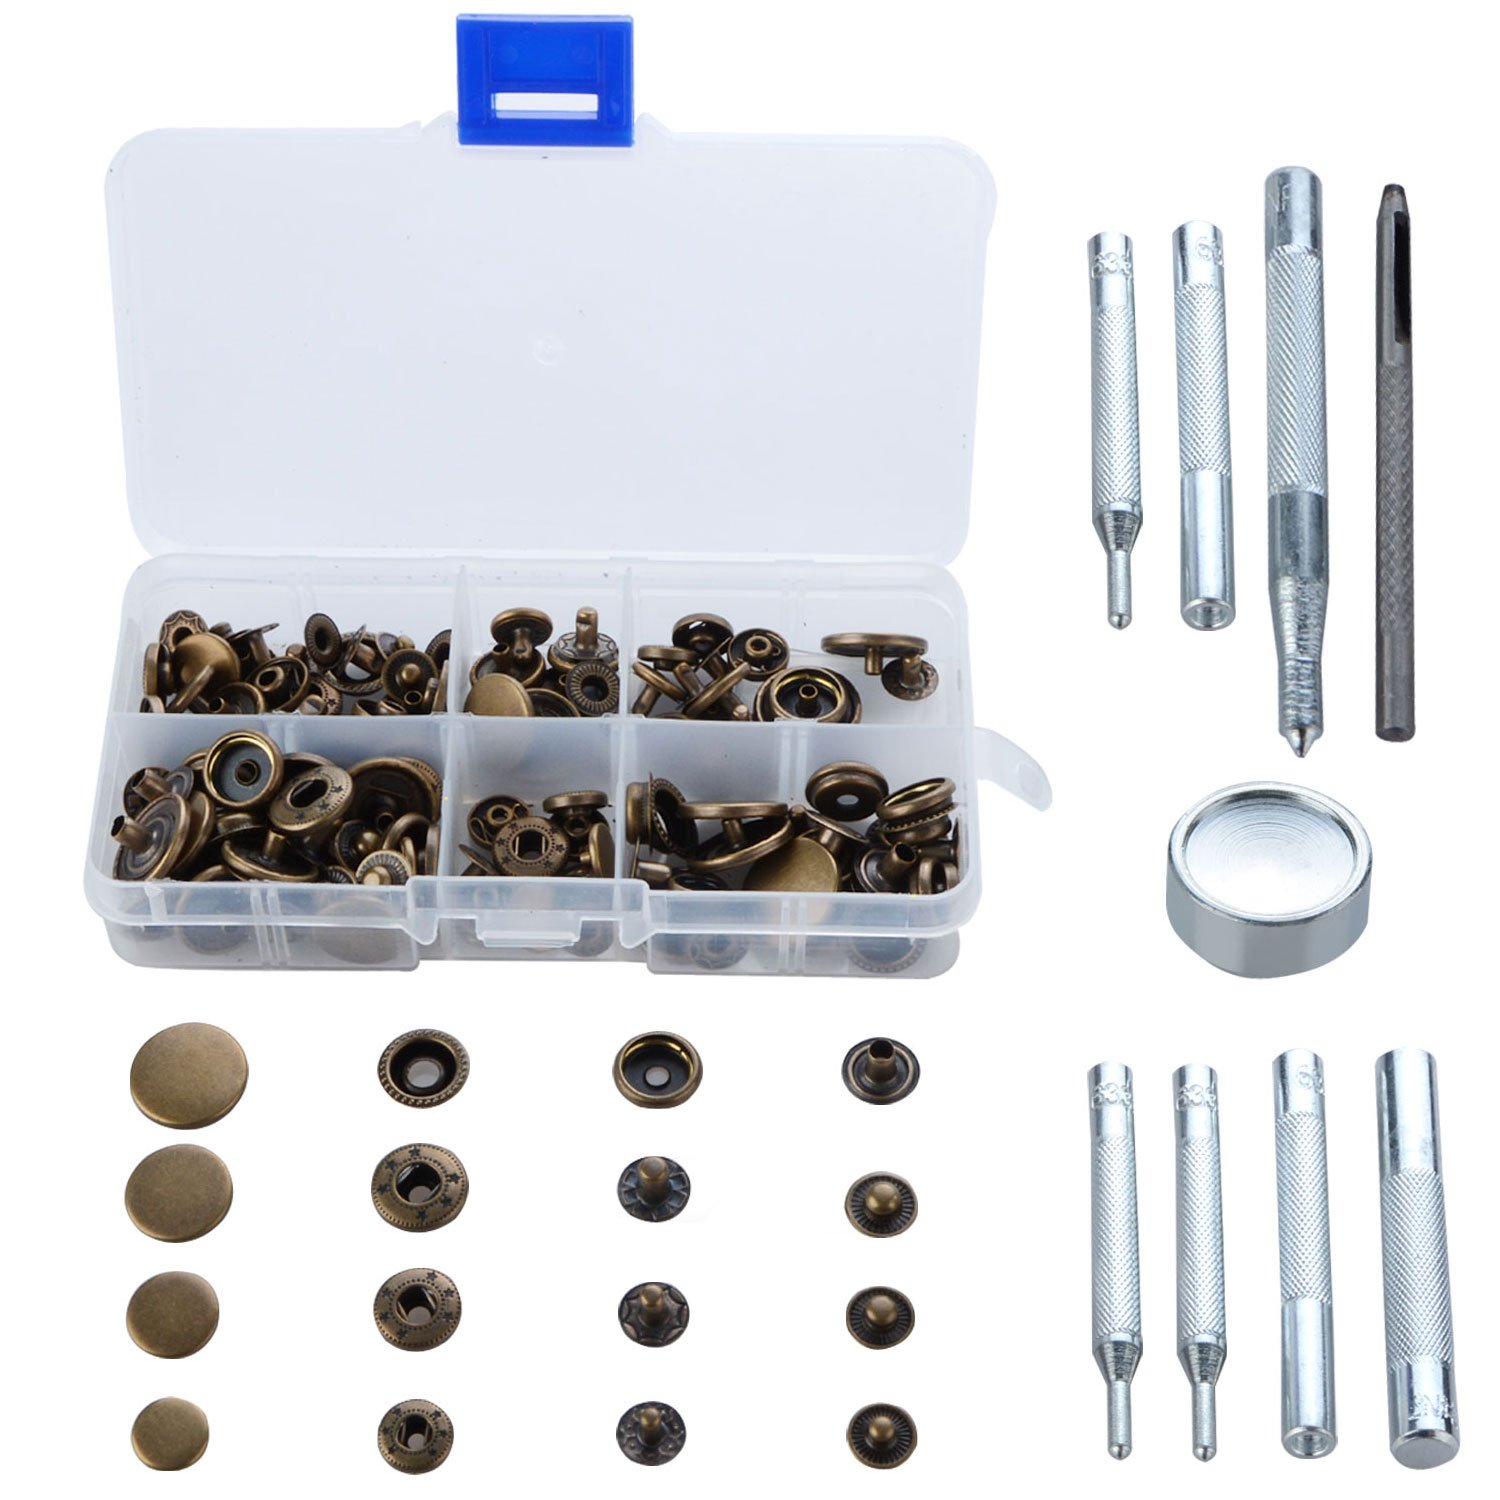 Copper Snap Fasteners Bronze Clothing Snaps Button with Fixing Tool Kit for Leather Craft Jacket Wallet Handbag Toyfun